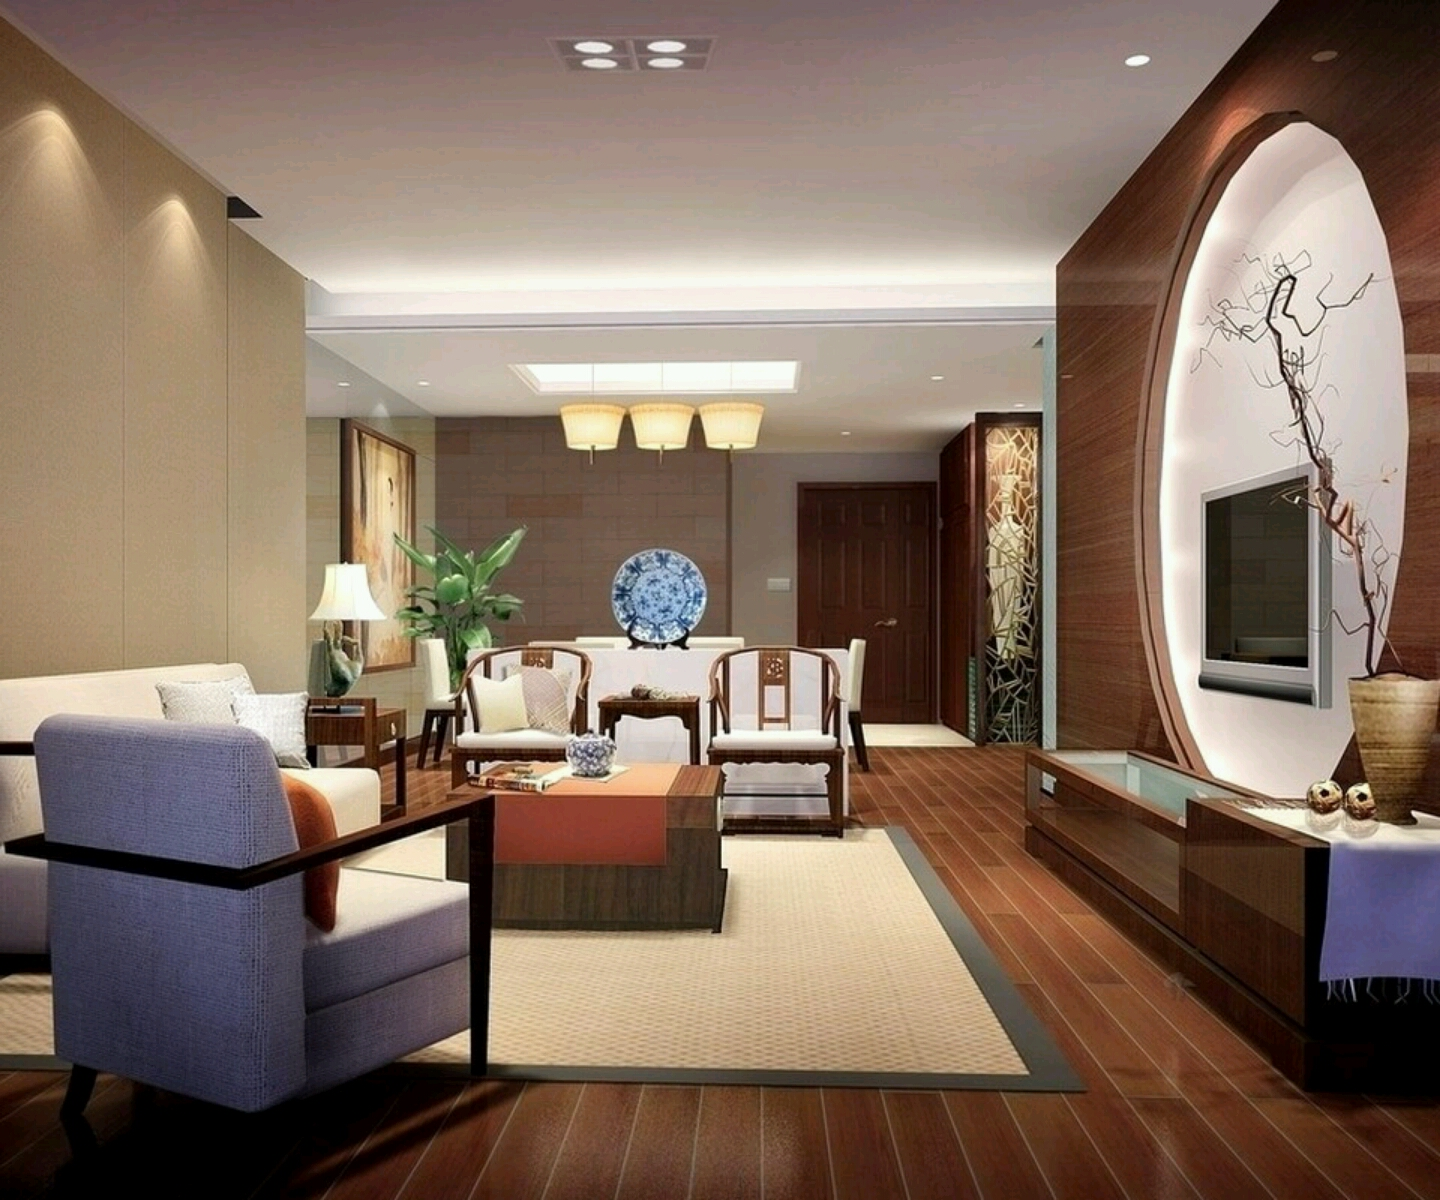 Interior design for living room mumbai 2017 2018 best for Room interior